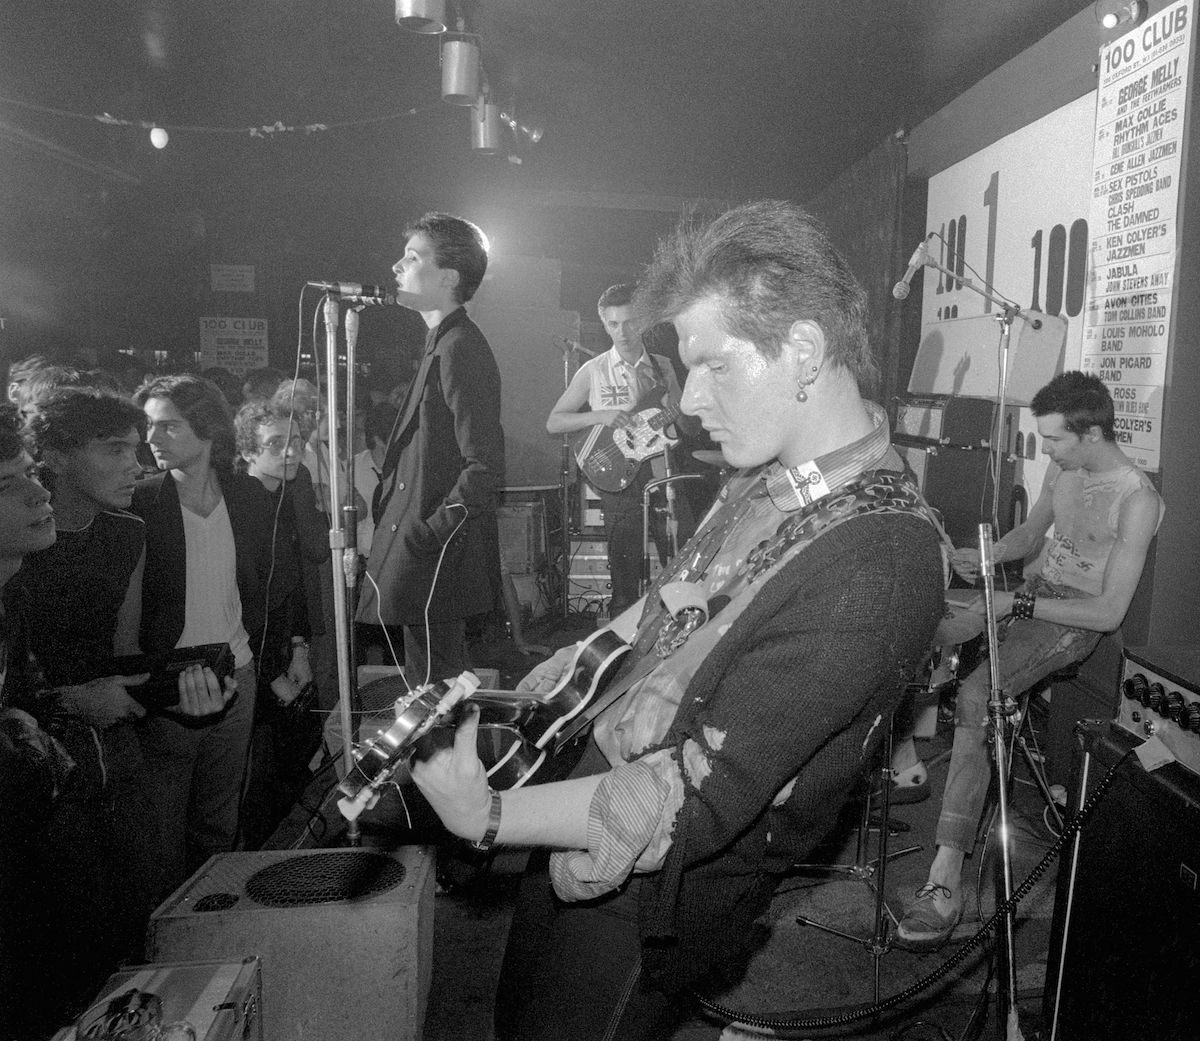 Siouxsie And The Bansheets debut 100 Club Marco Pirroni on guitar